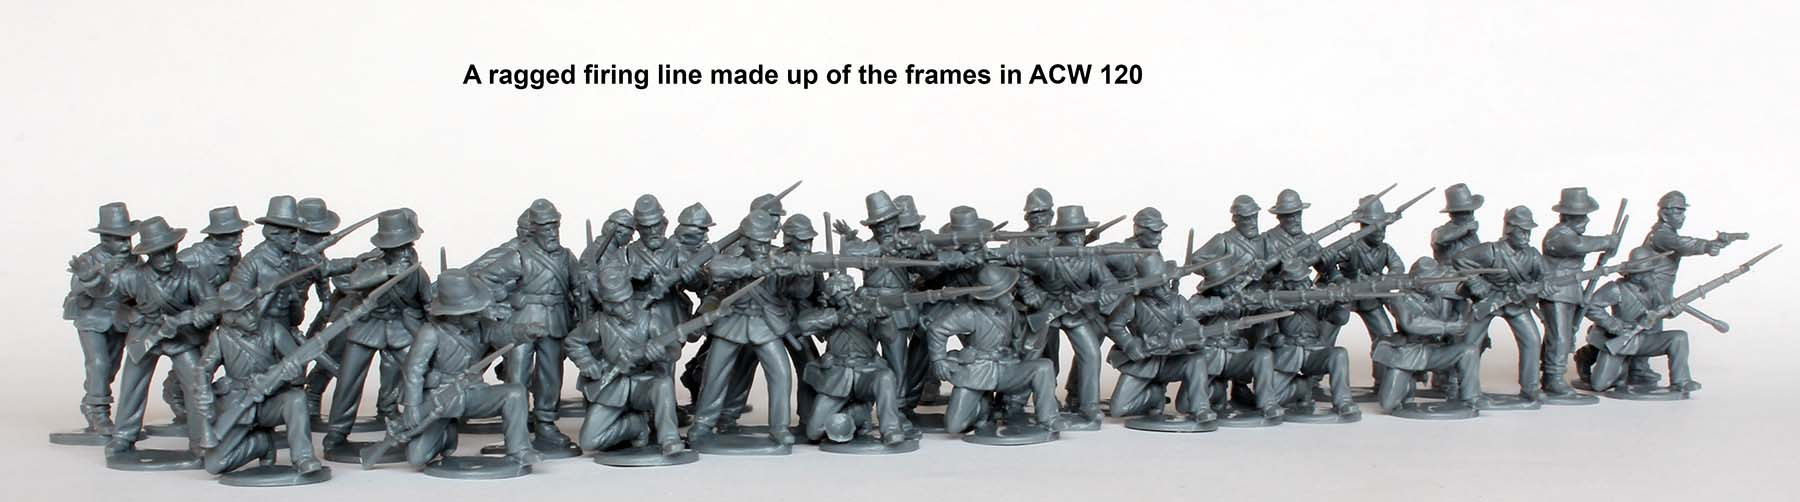 American Civil War Union Infantry in sack coats Skirmishing 1861-65 (Perry)